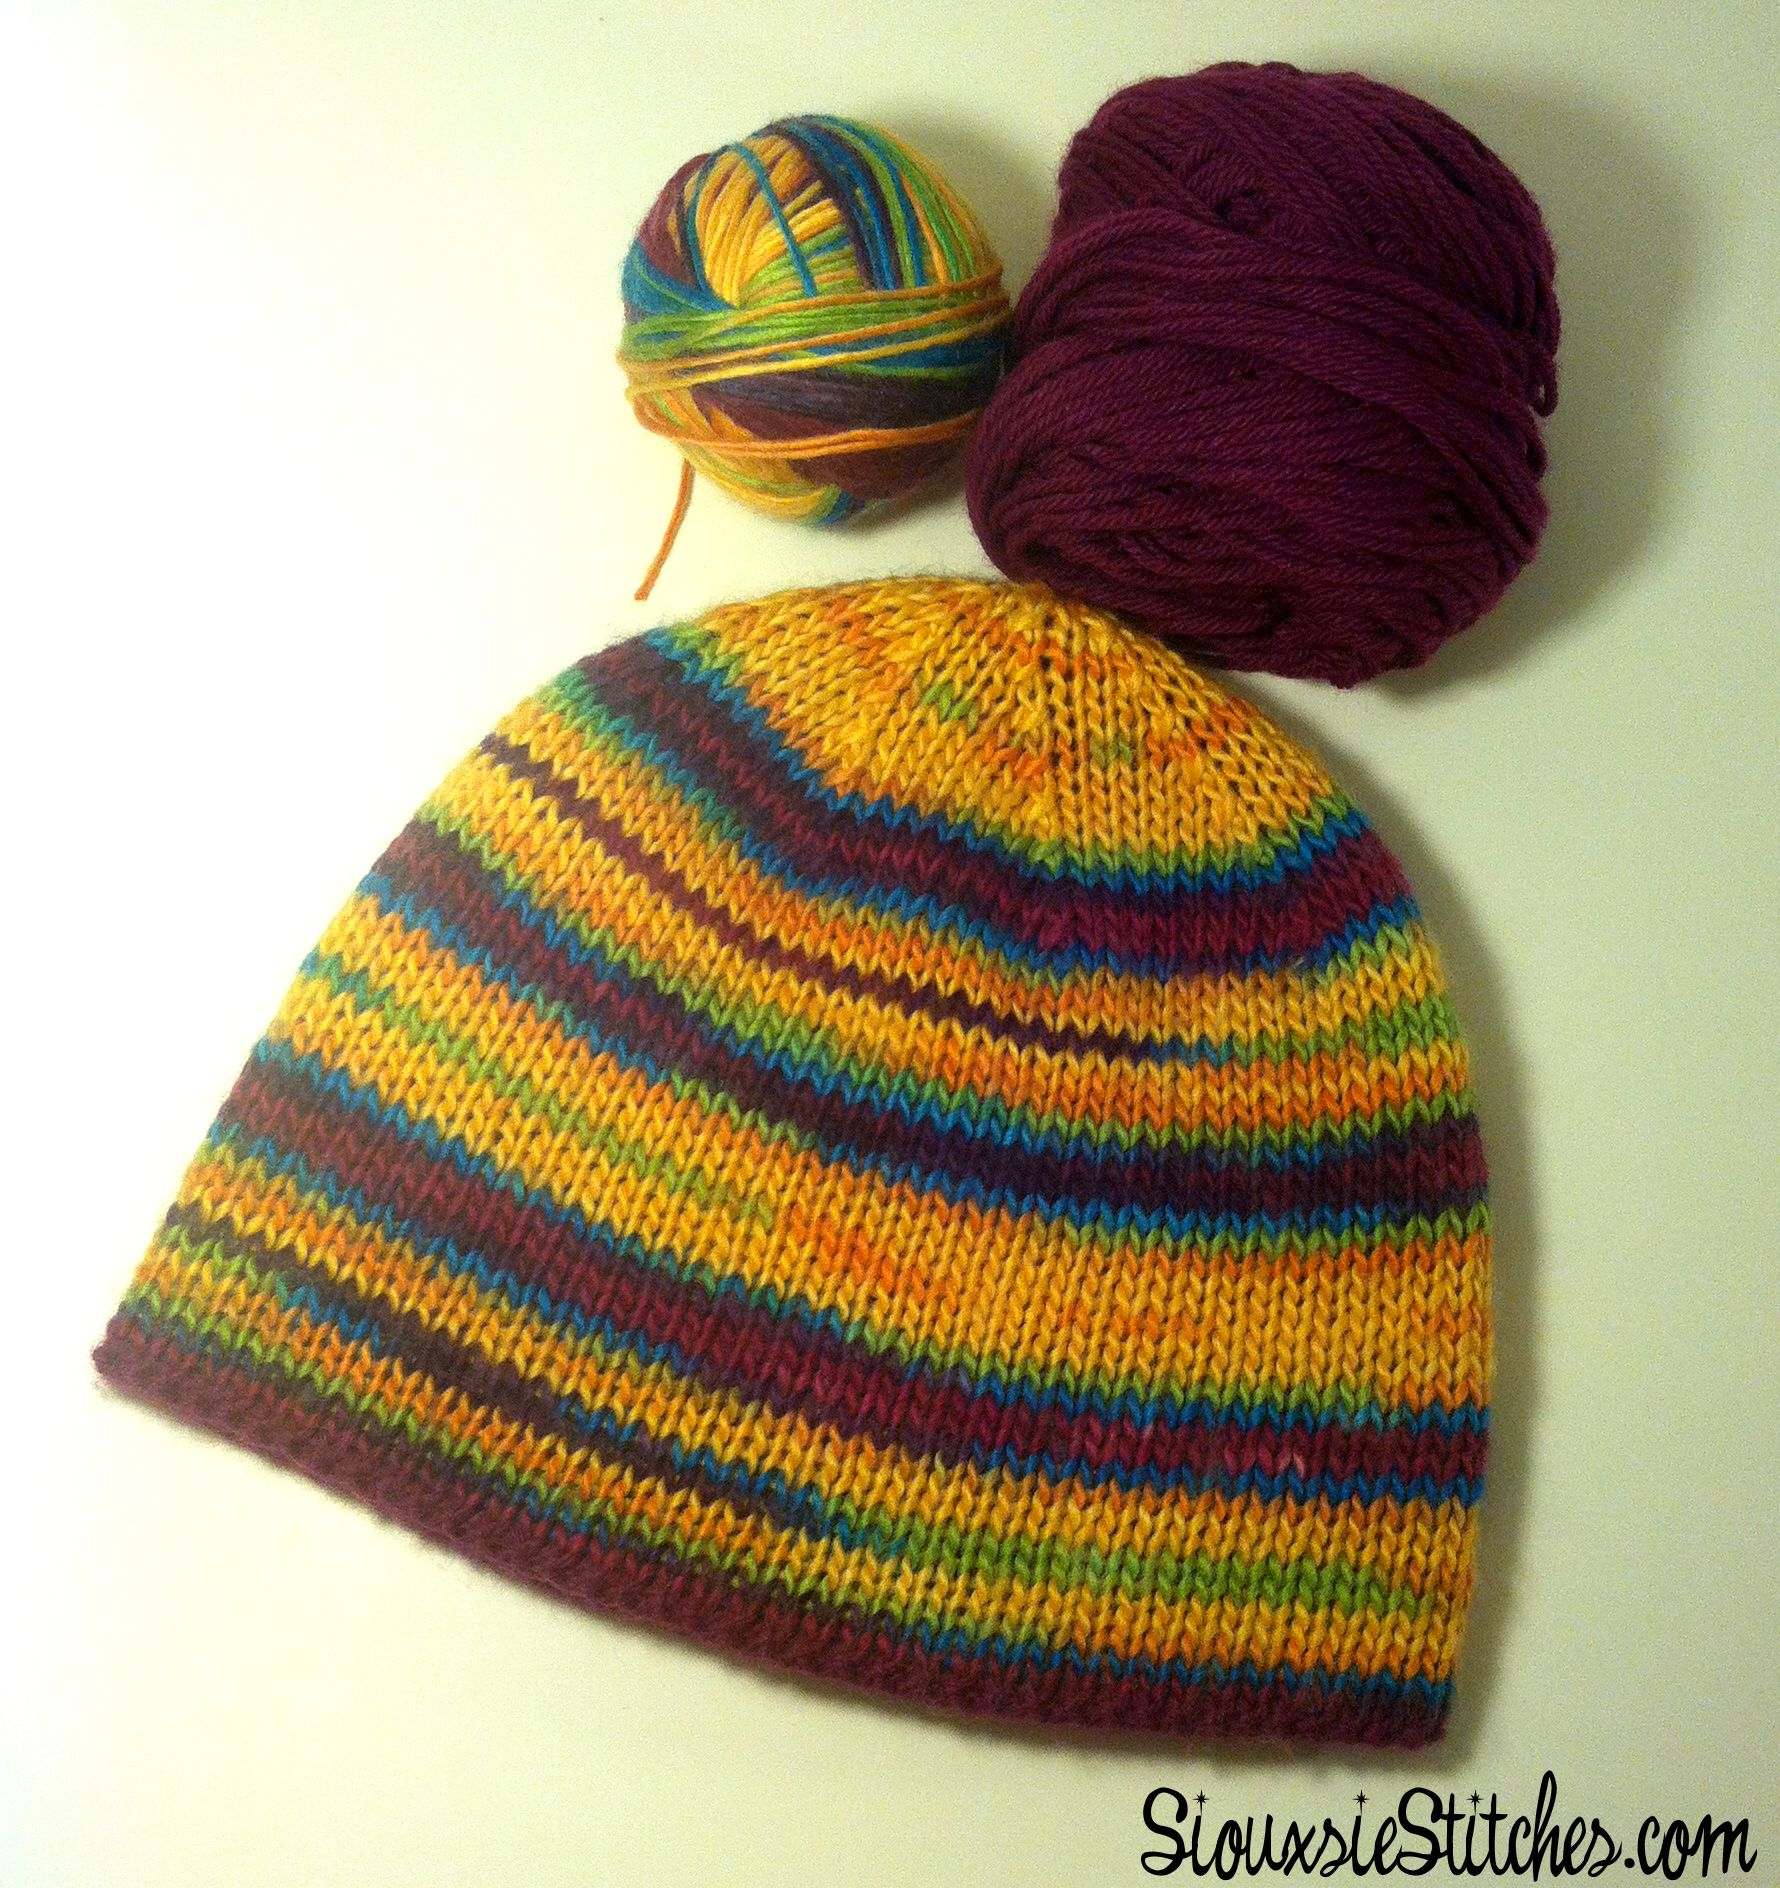 Free reversible hat knitting pattern by SiouxsieStitches.com ...